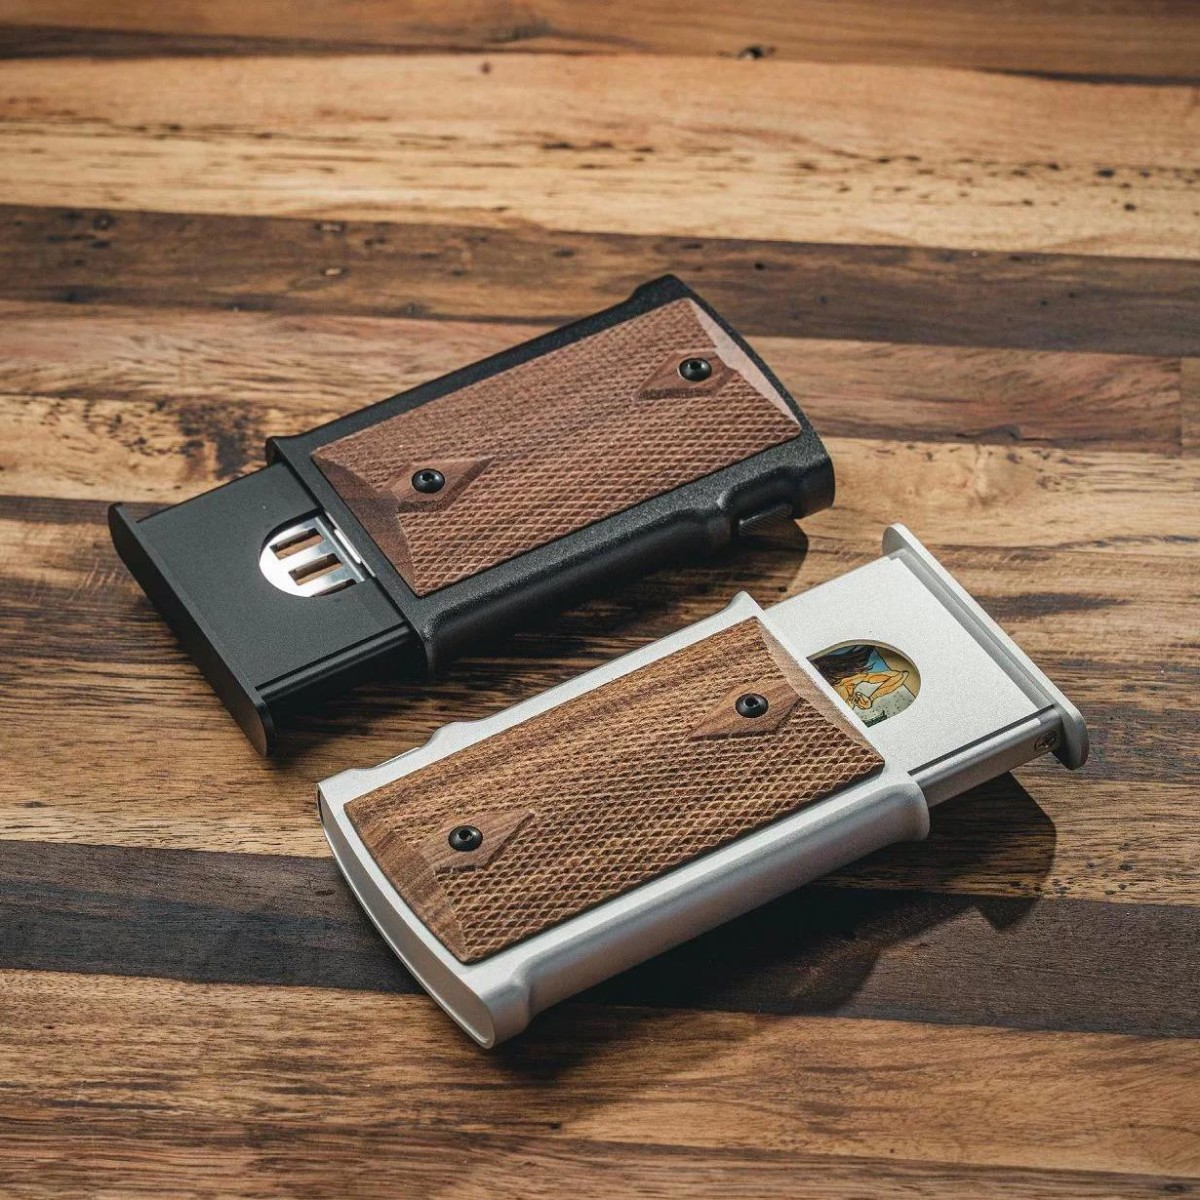 M1911-h Reloading Card Holder sounds just like the real pistol